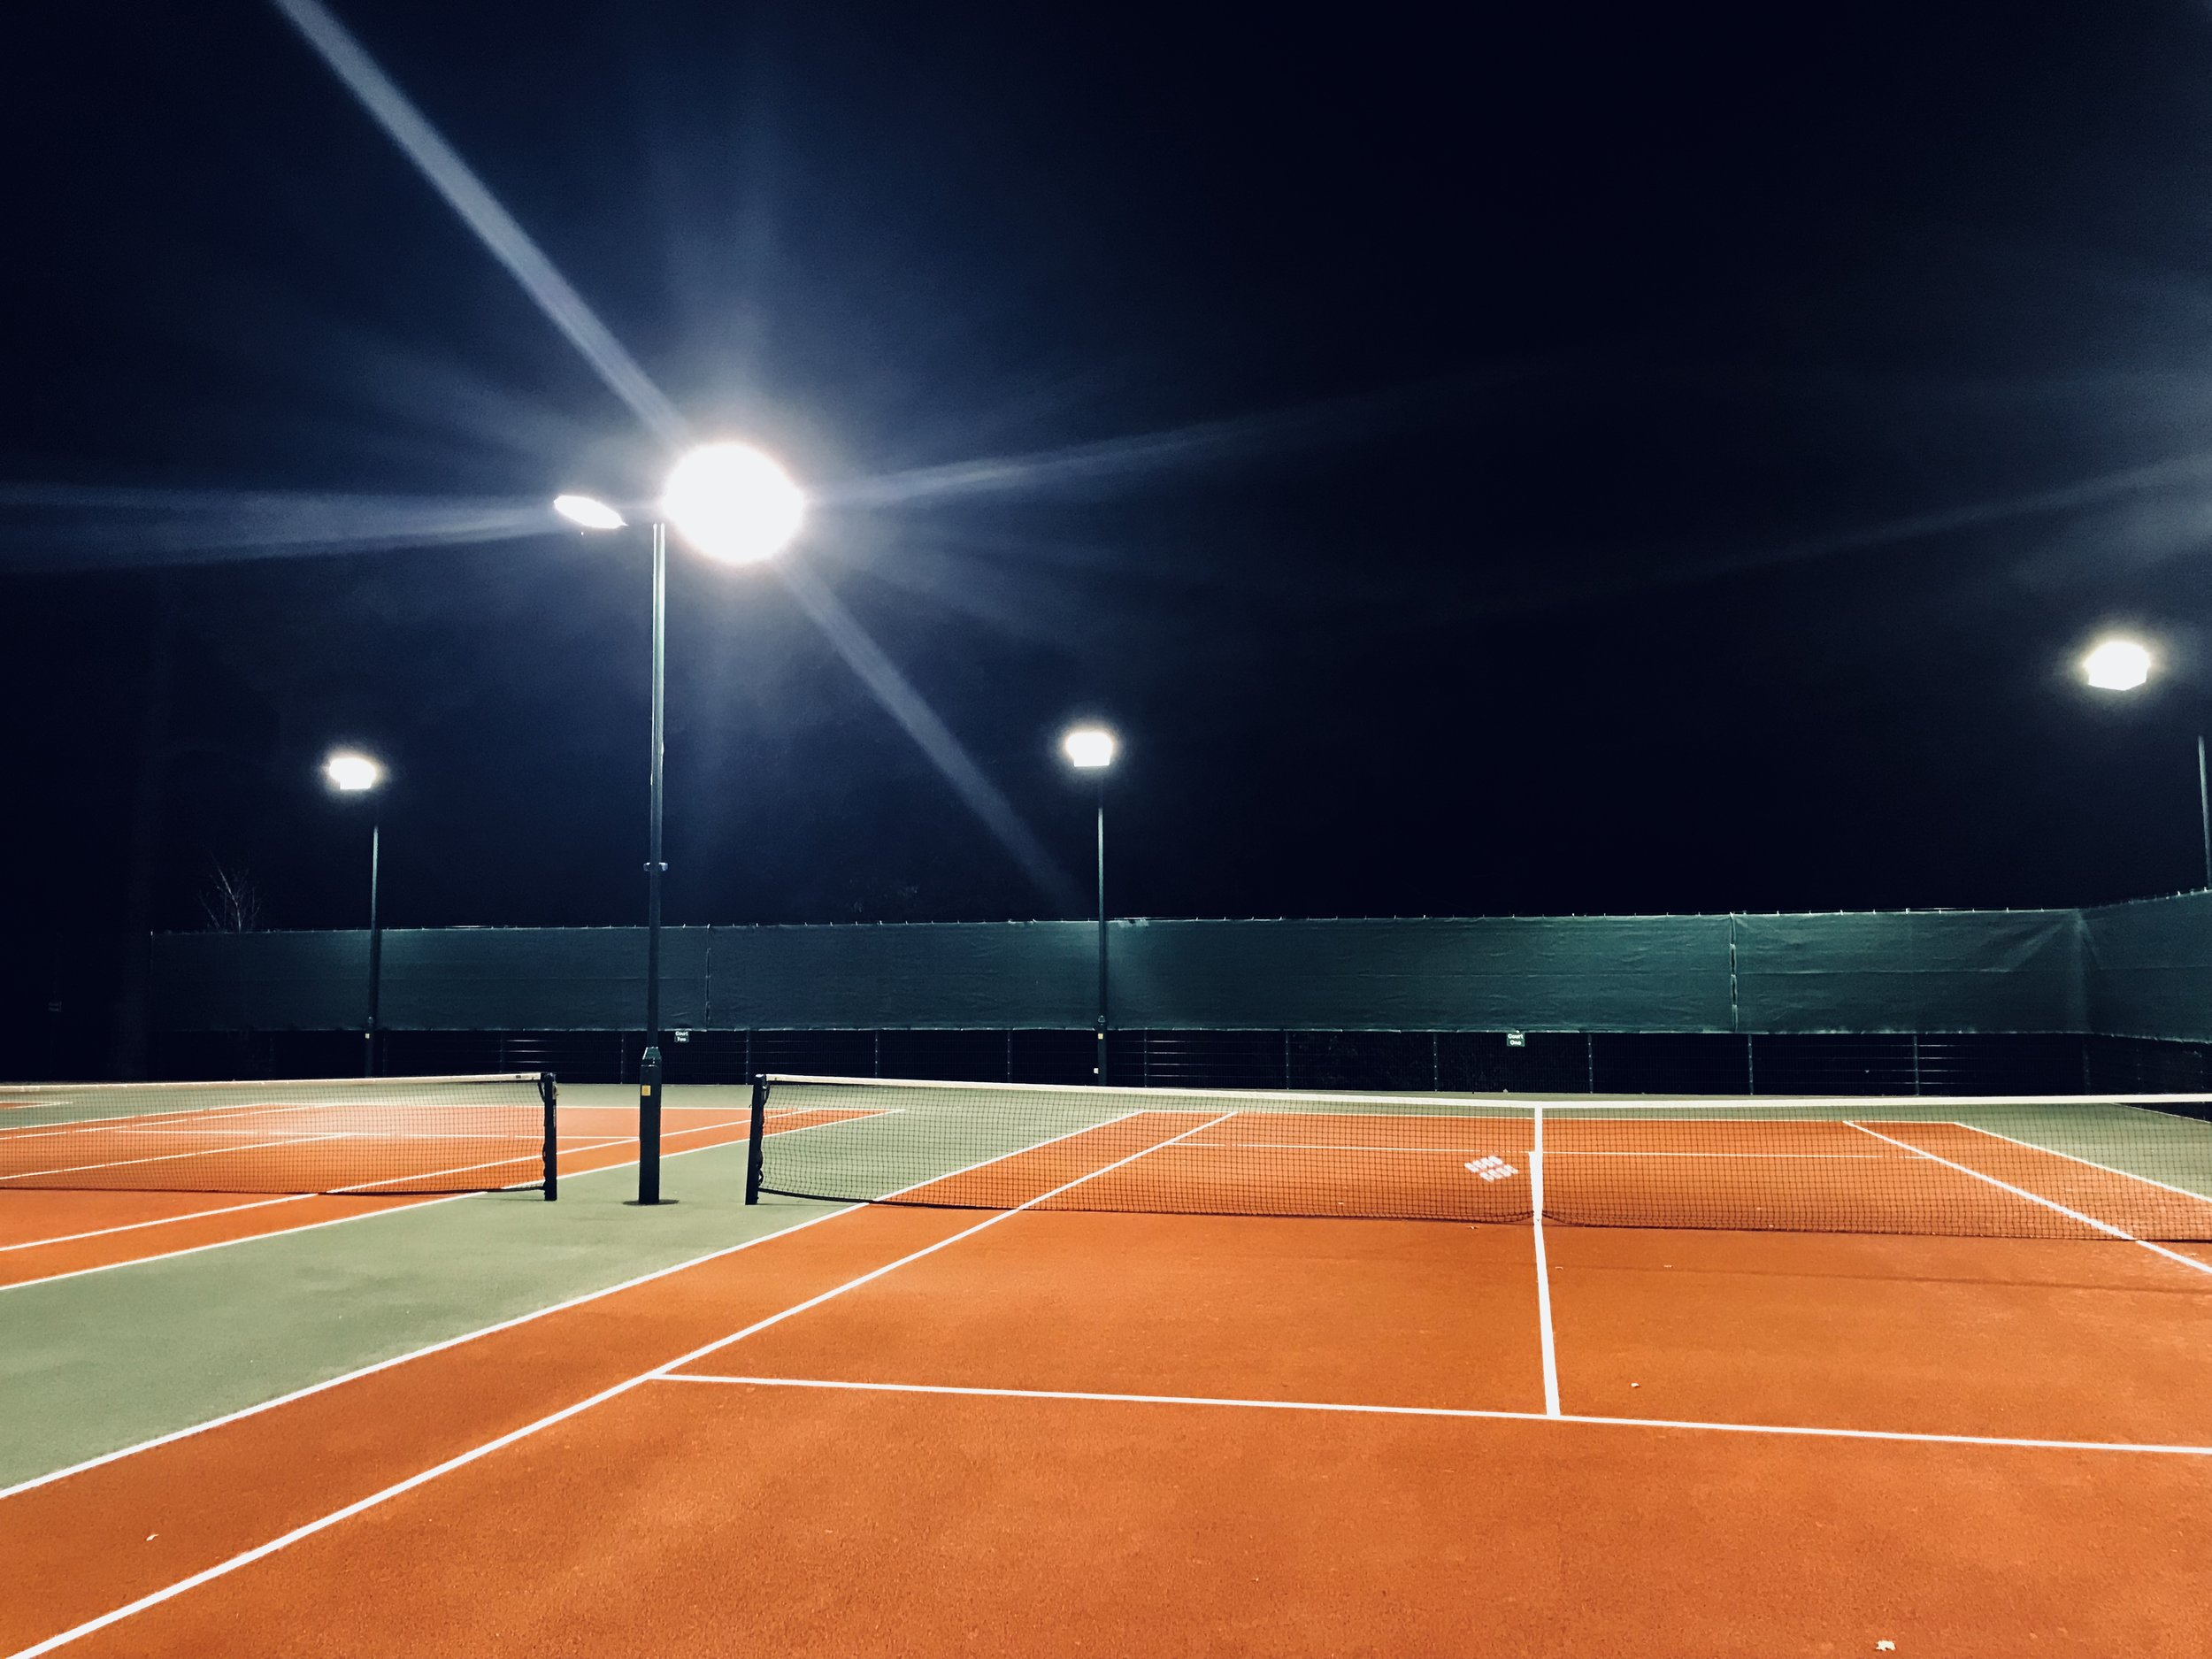 Floodlights - Autumn 2017 saw the introduction of Floodlit Courts to Branksome Park Tennis. For more details click the link below.